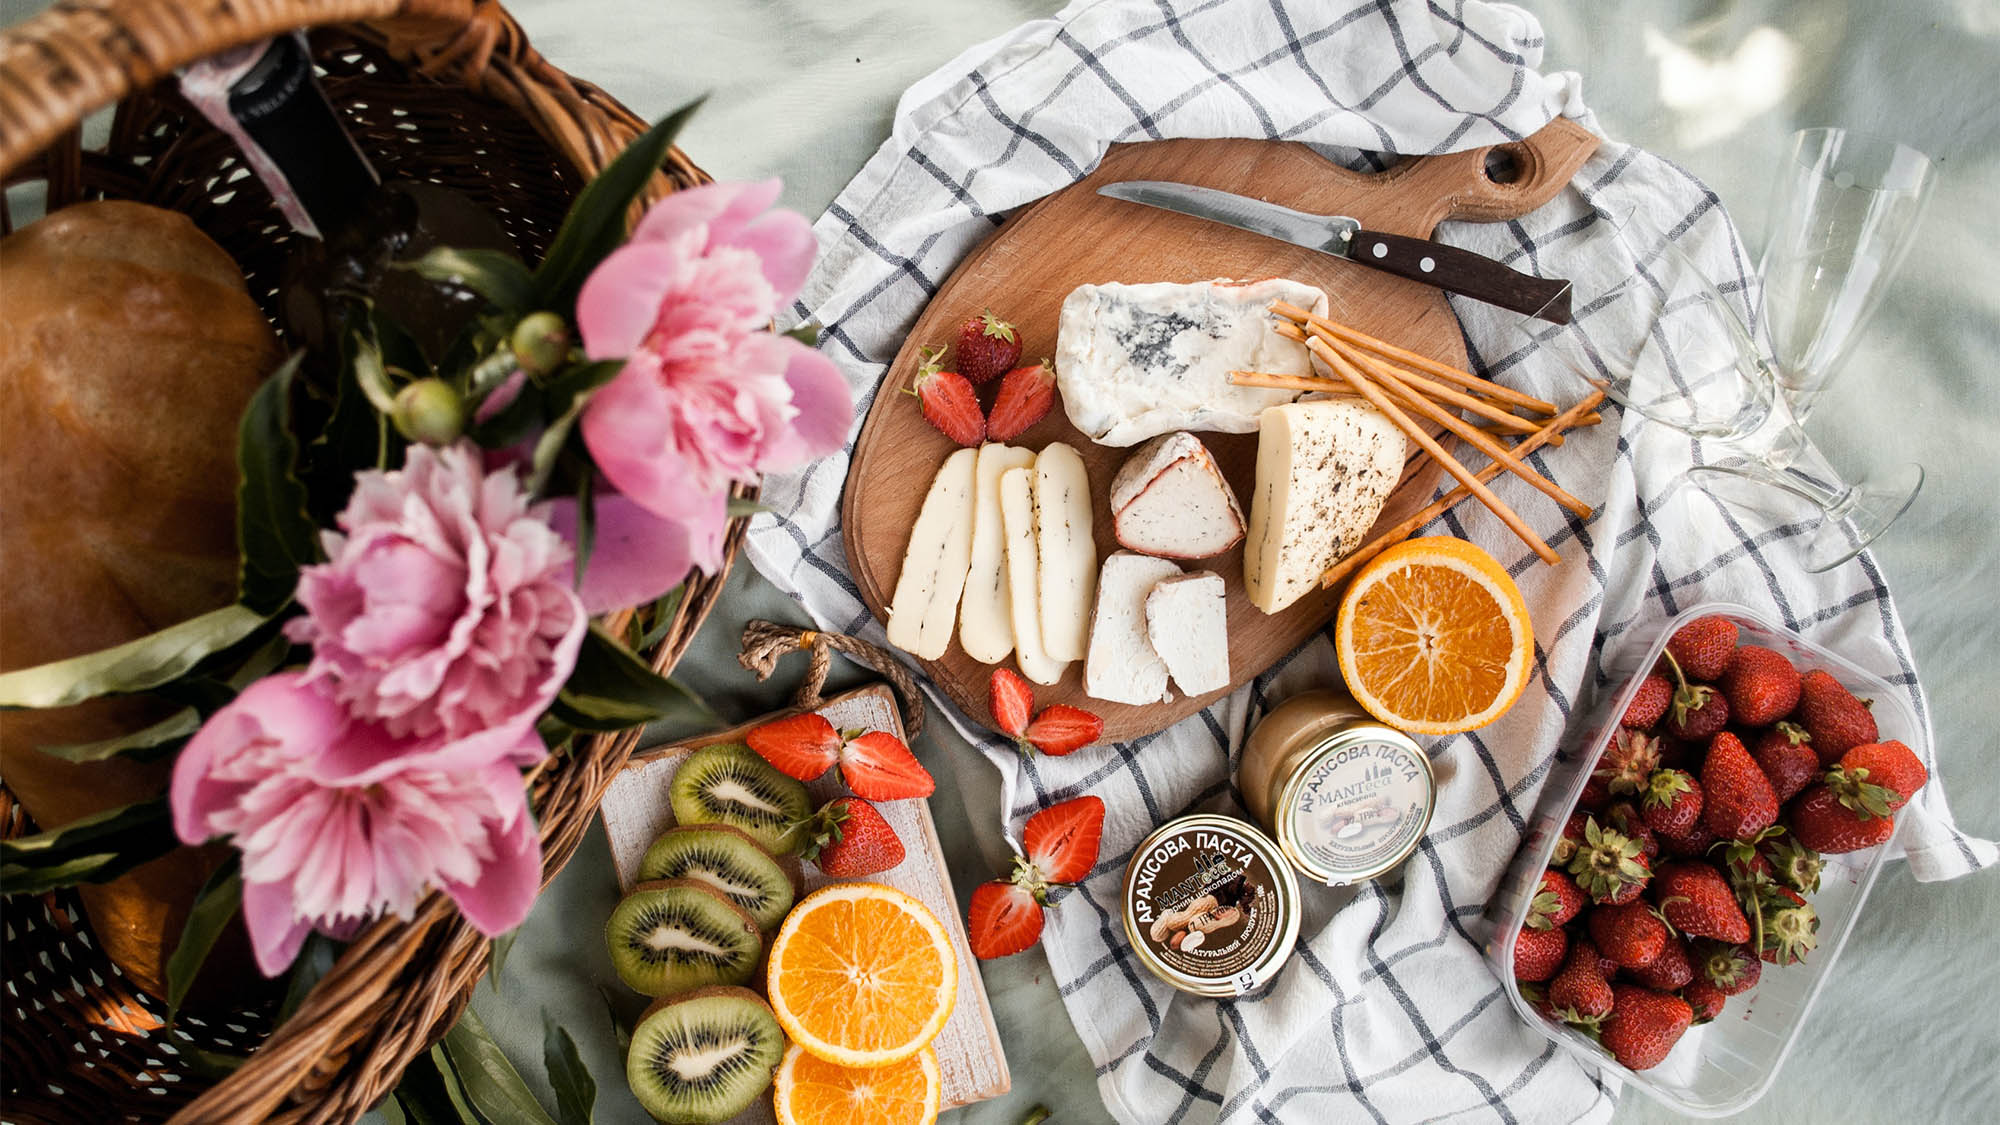 Charcuterie Board Atop Picnic Blanket with Flowers and Fruit